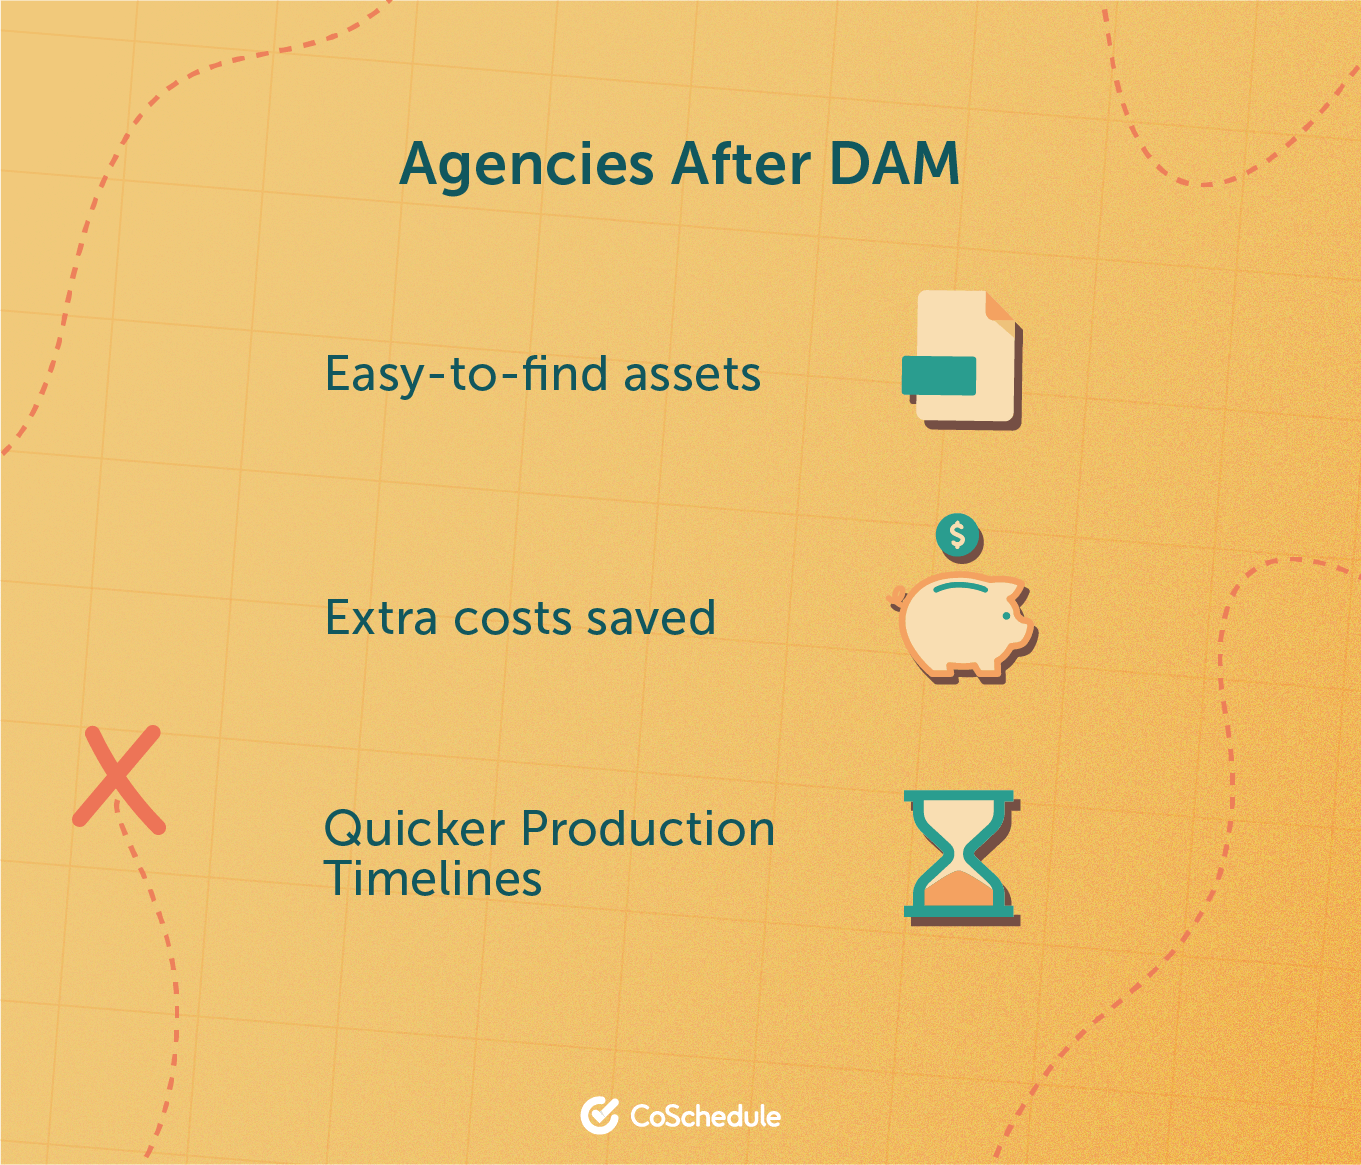 Three different examples of agencies after DAM